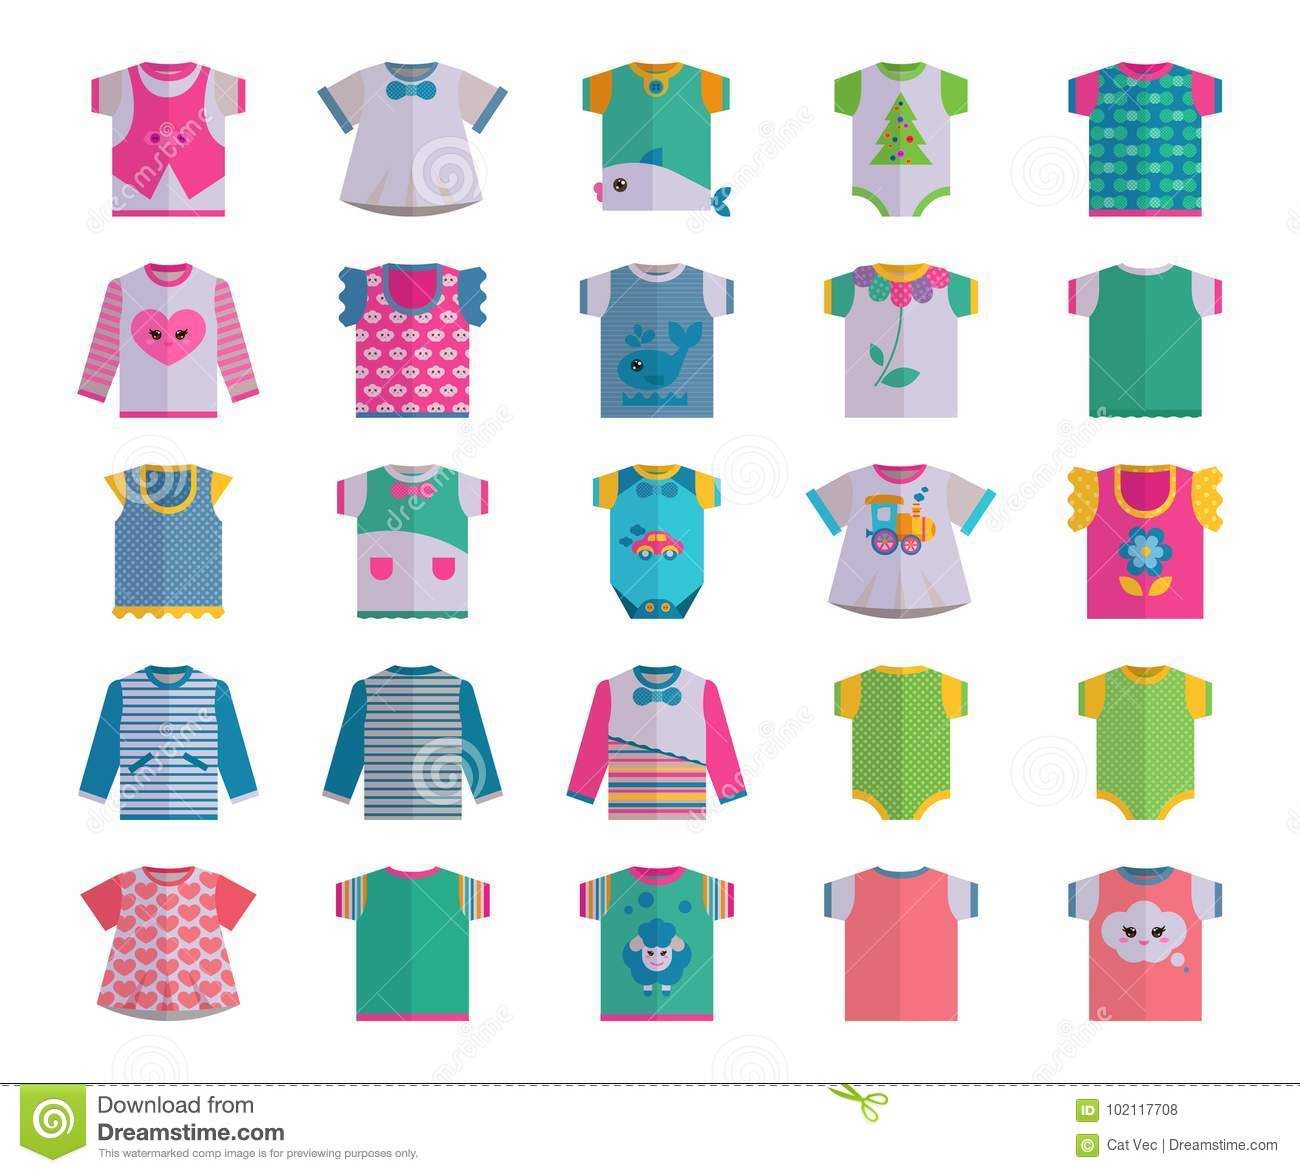 Vector flat baby infant clothes textile icon set design casual fabric colorful dress child garment wear illustration t